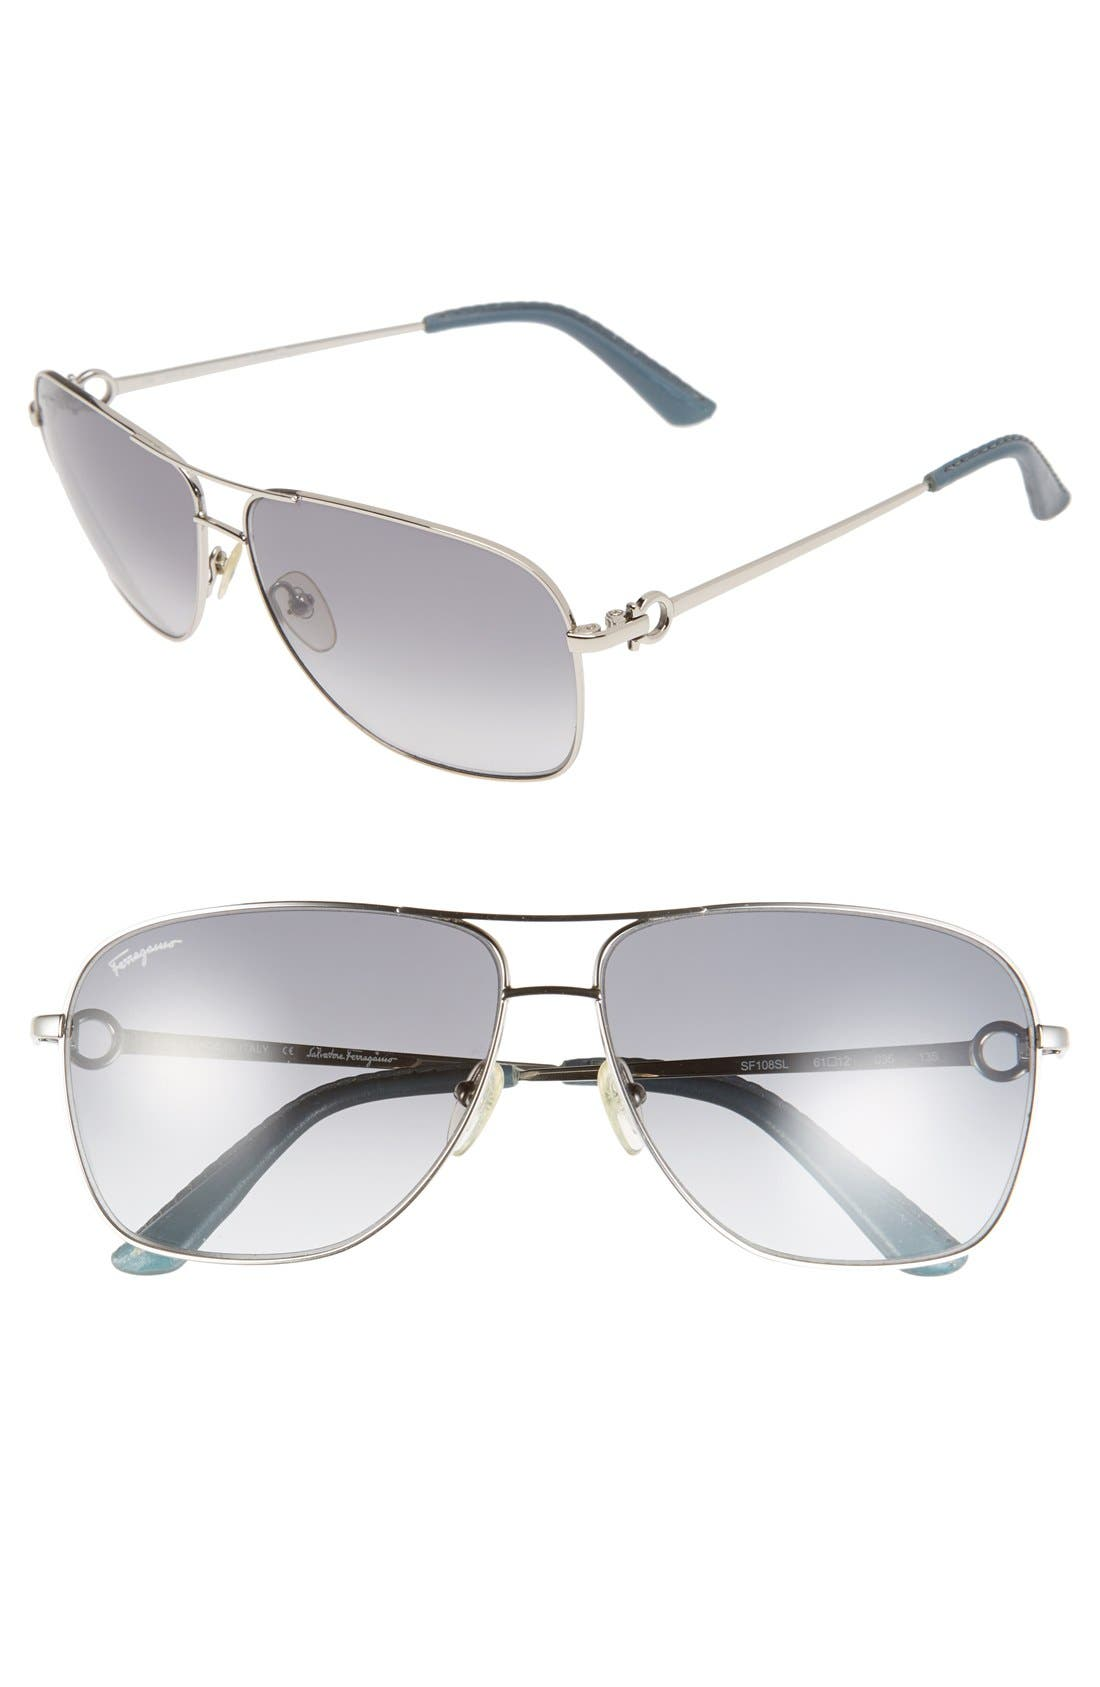 Main Image - Salvatore Ferragamo 61mm Metal Navigator Sunglasses